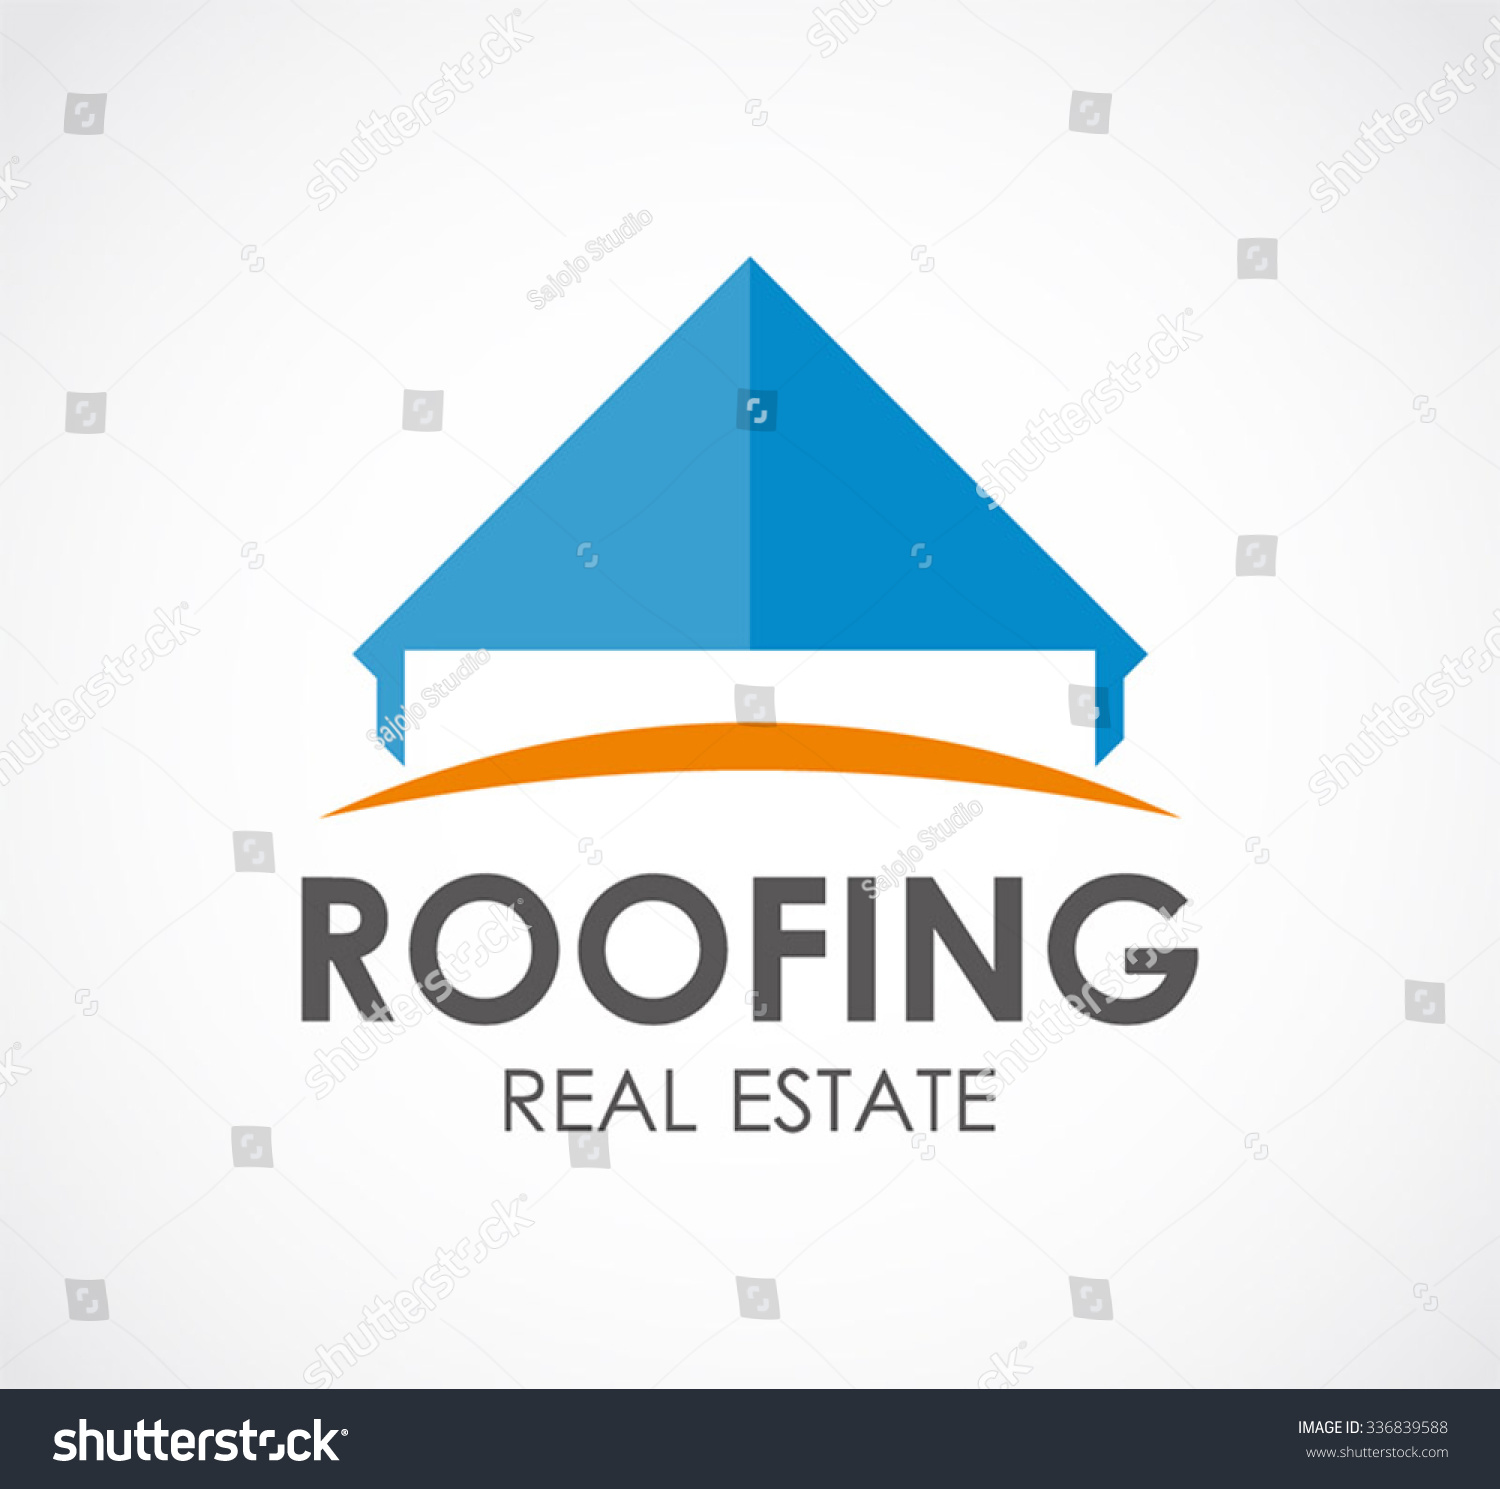 Roofing Of Real Estate Abstract Vector And Logo Design Or Template House Business Icon Of Company Sc 1 St Shutterstock  sc 1 st  memphite.com : jaf roofing shingles - memphite.com